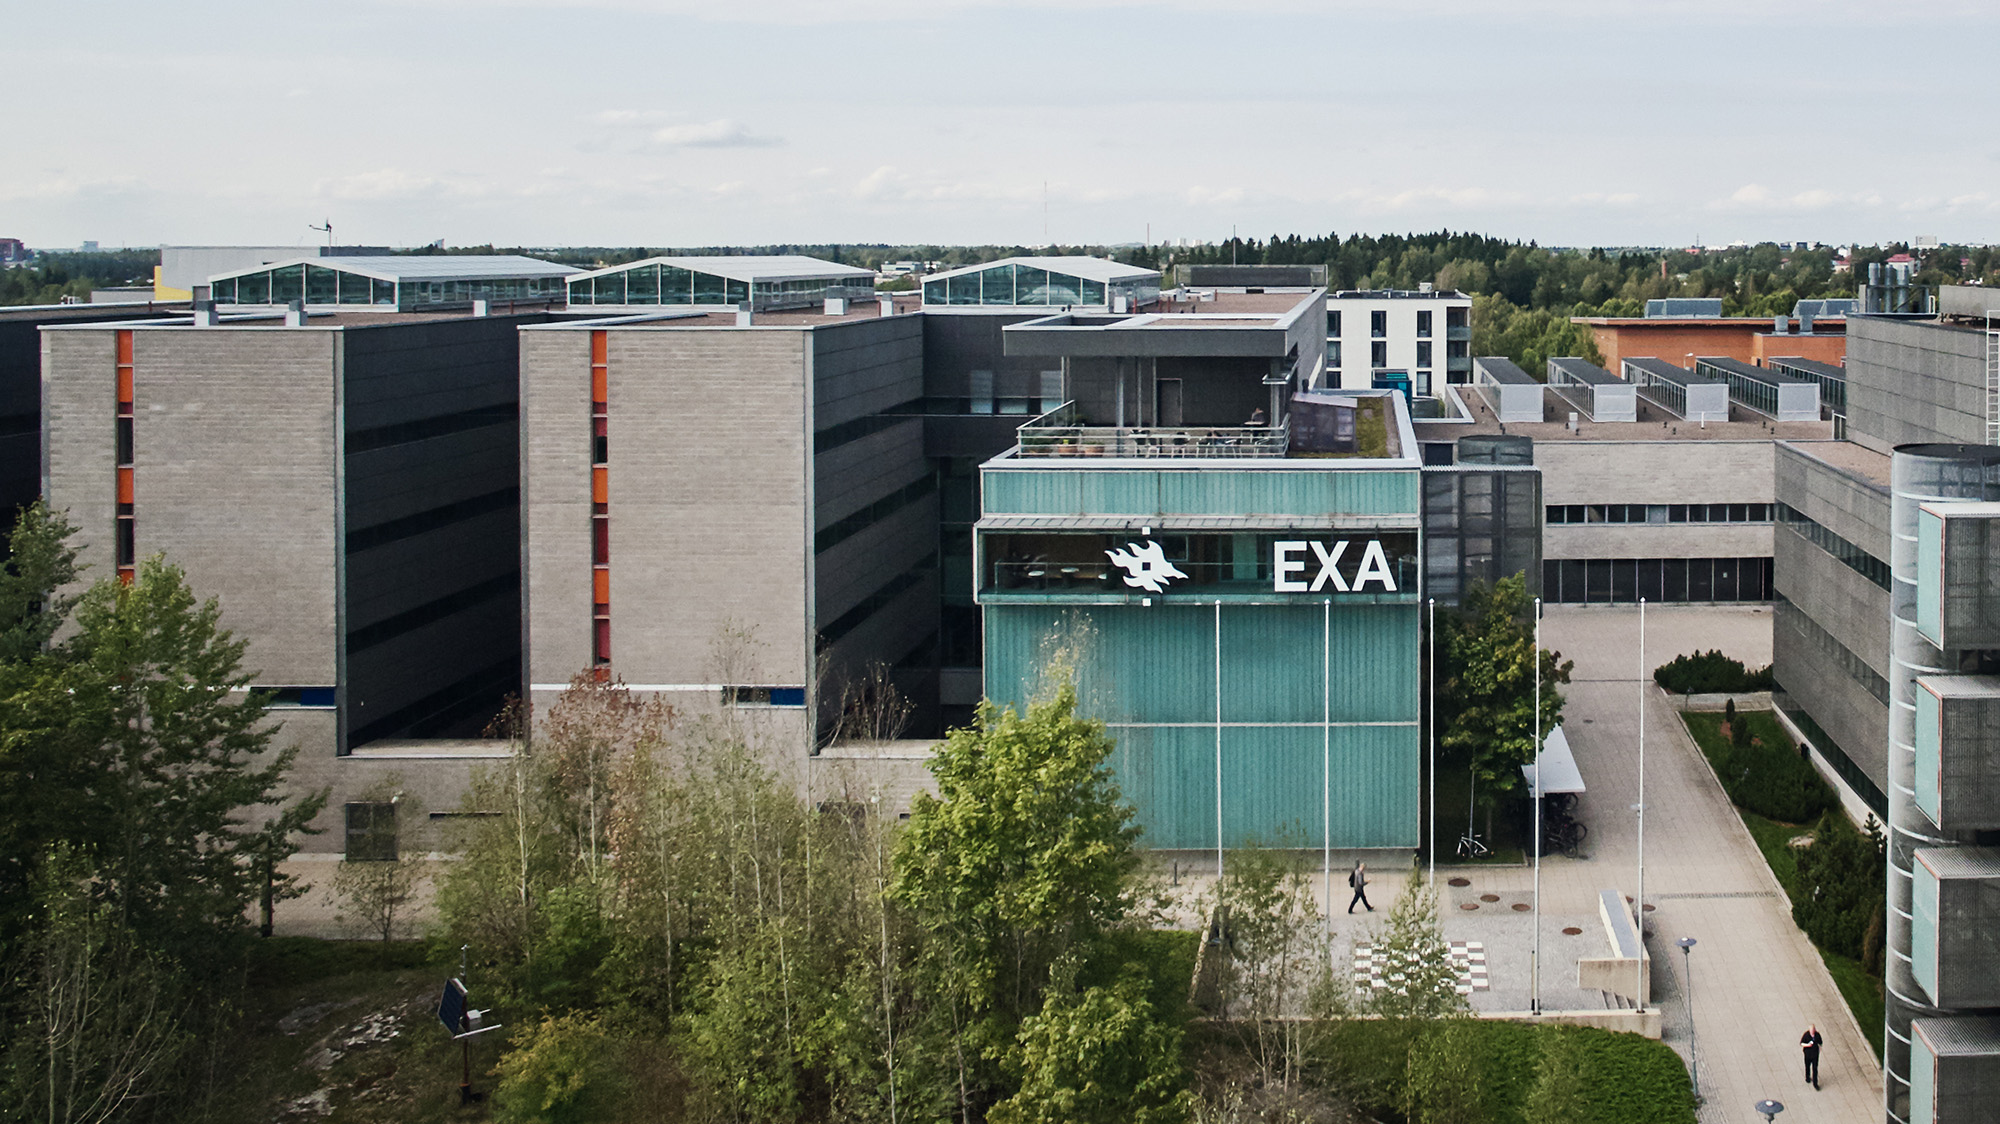 Exactum building at Kumpula Campus